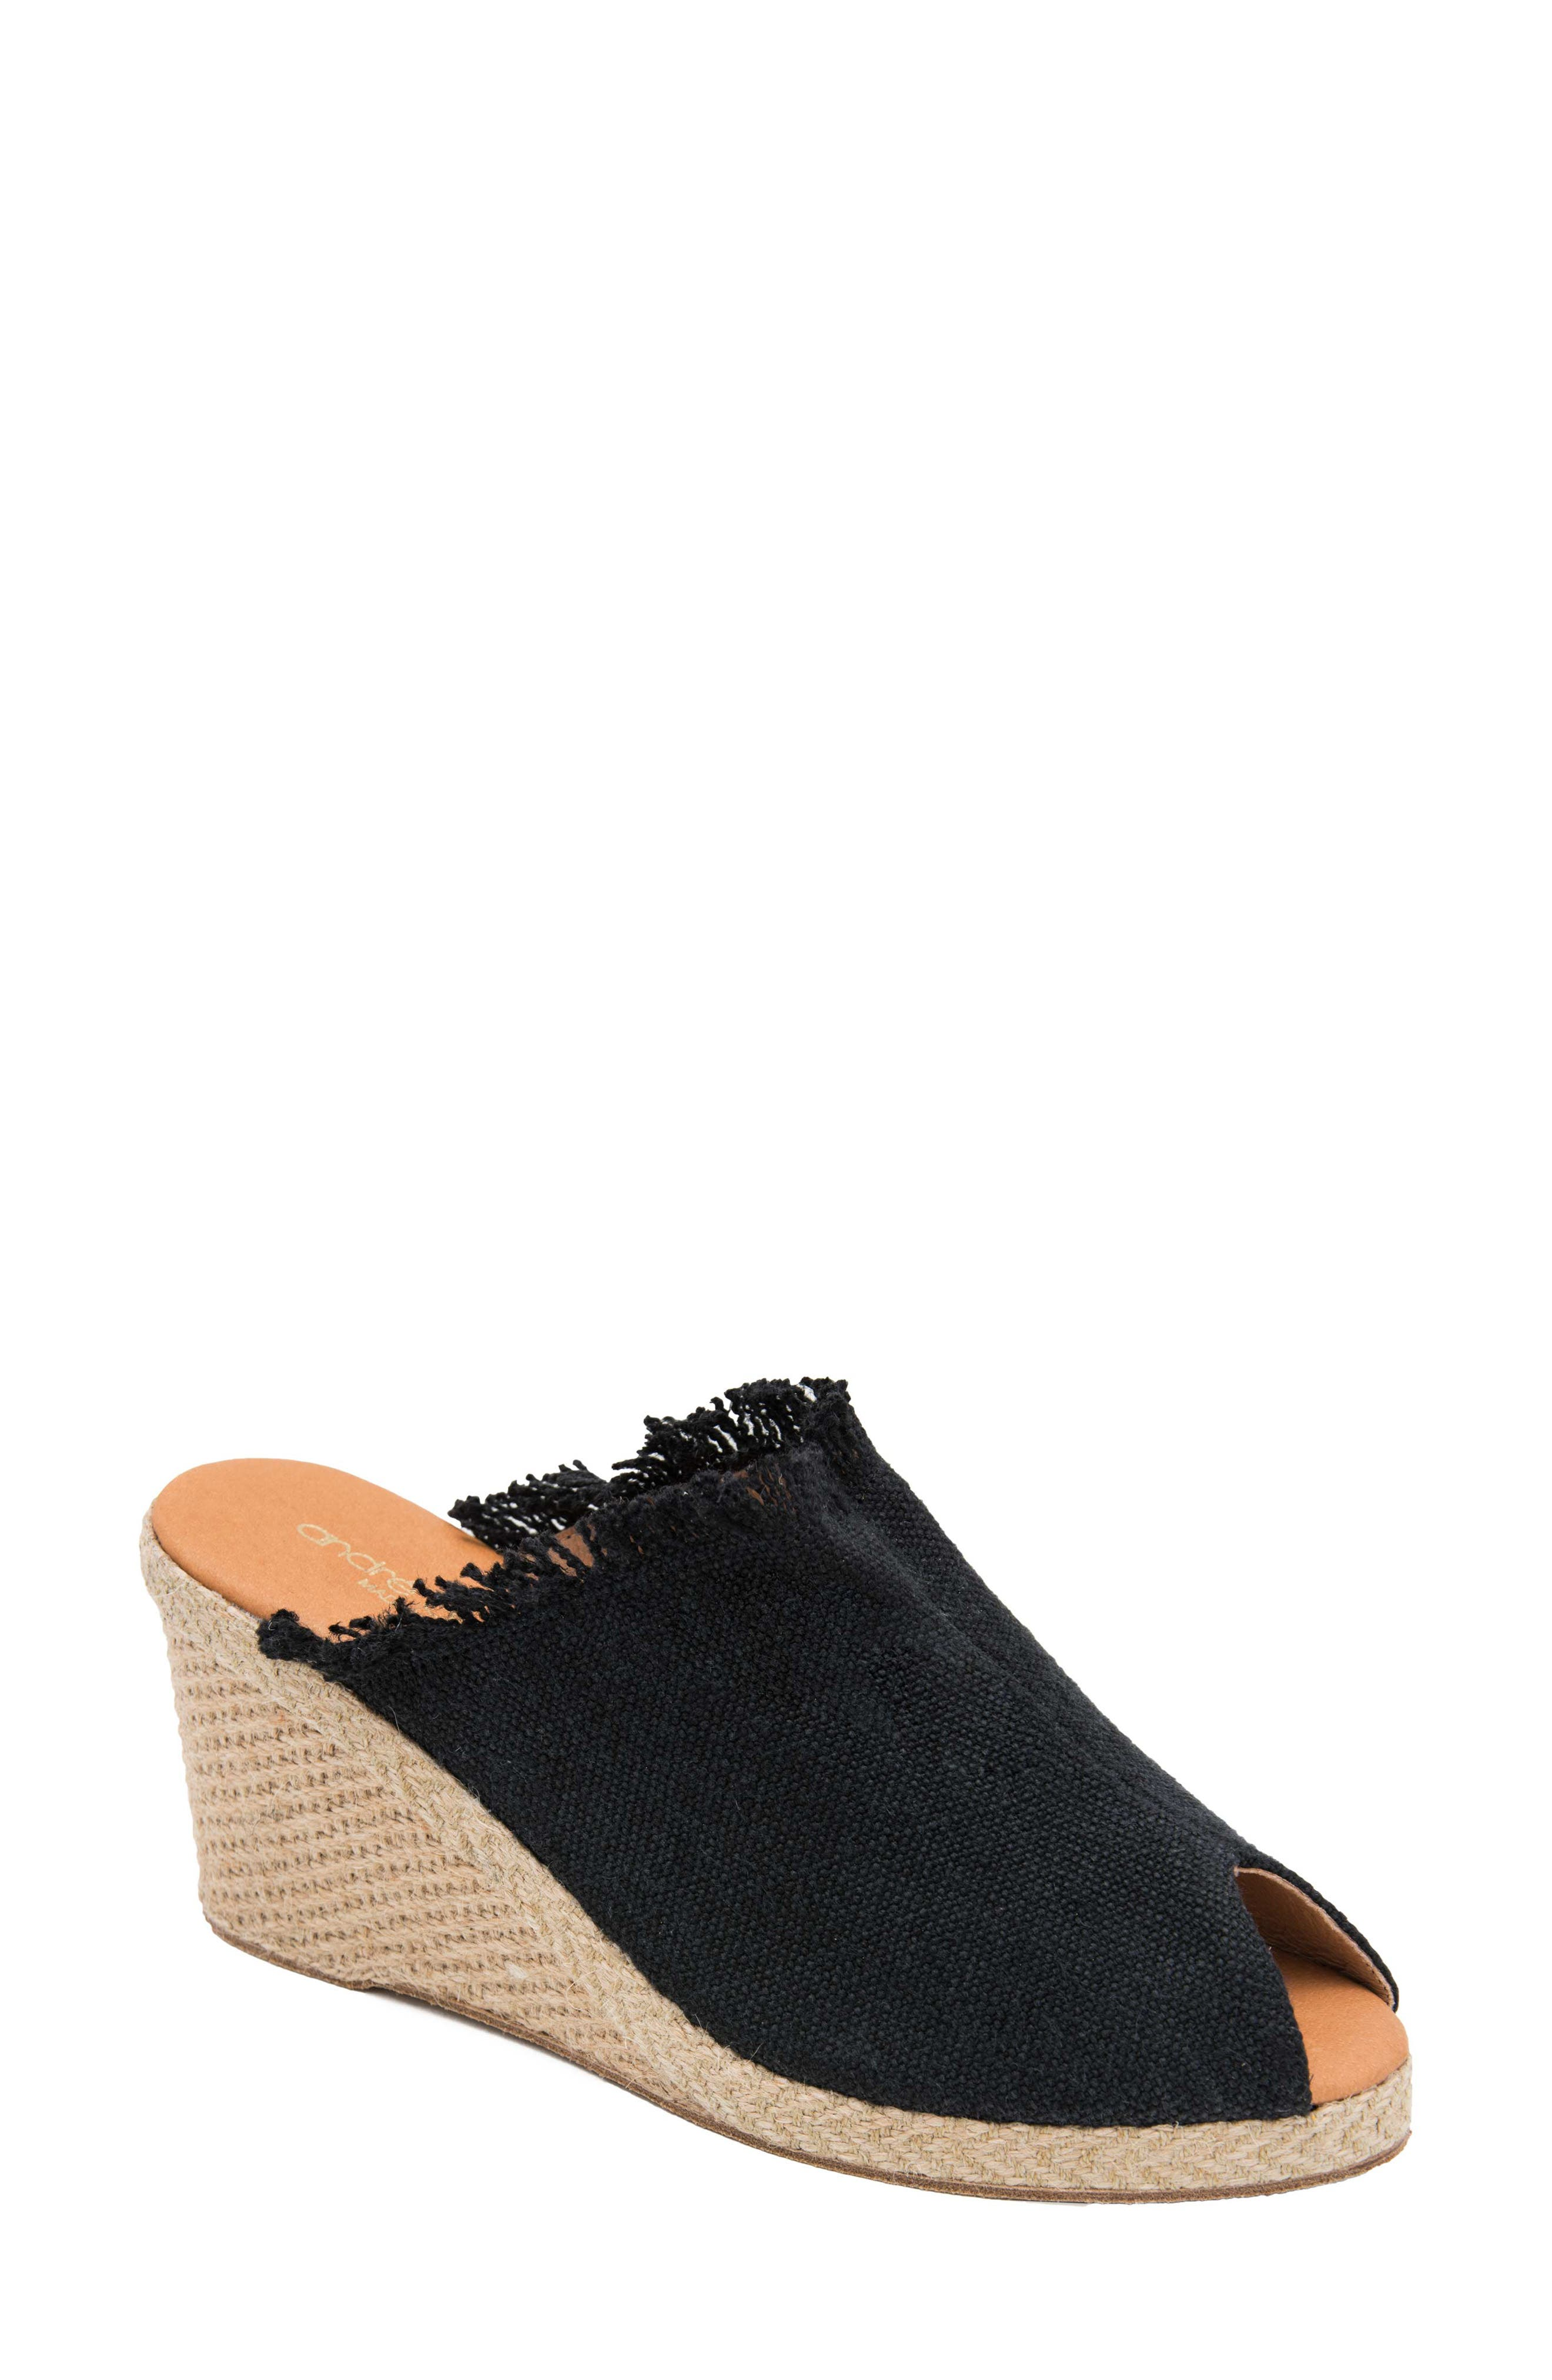 Andre Assous Popy Frayed Wedge Mule, Black